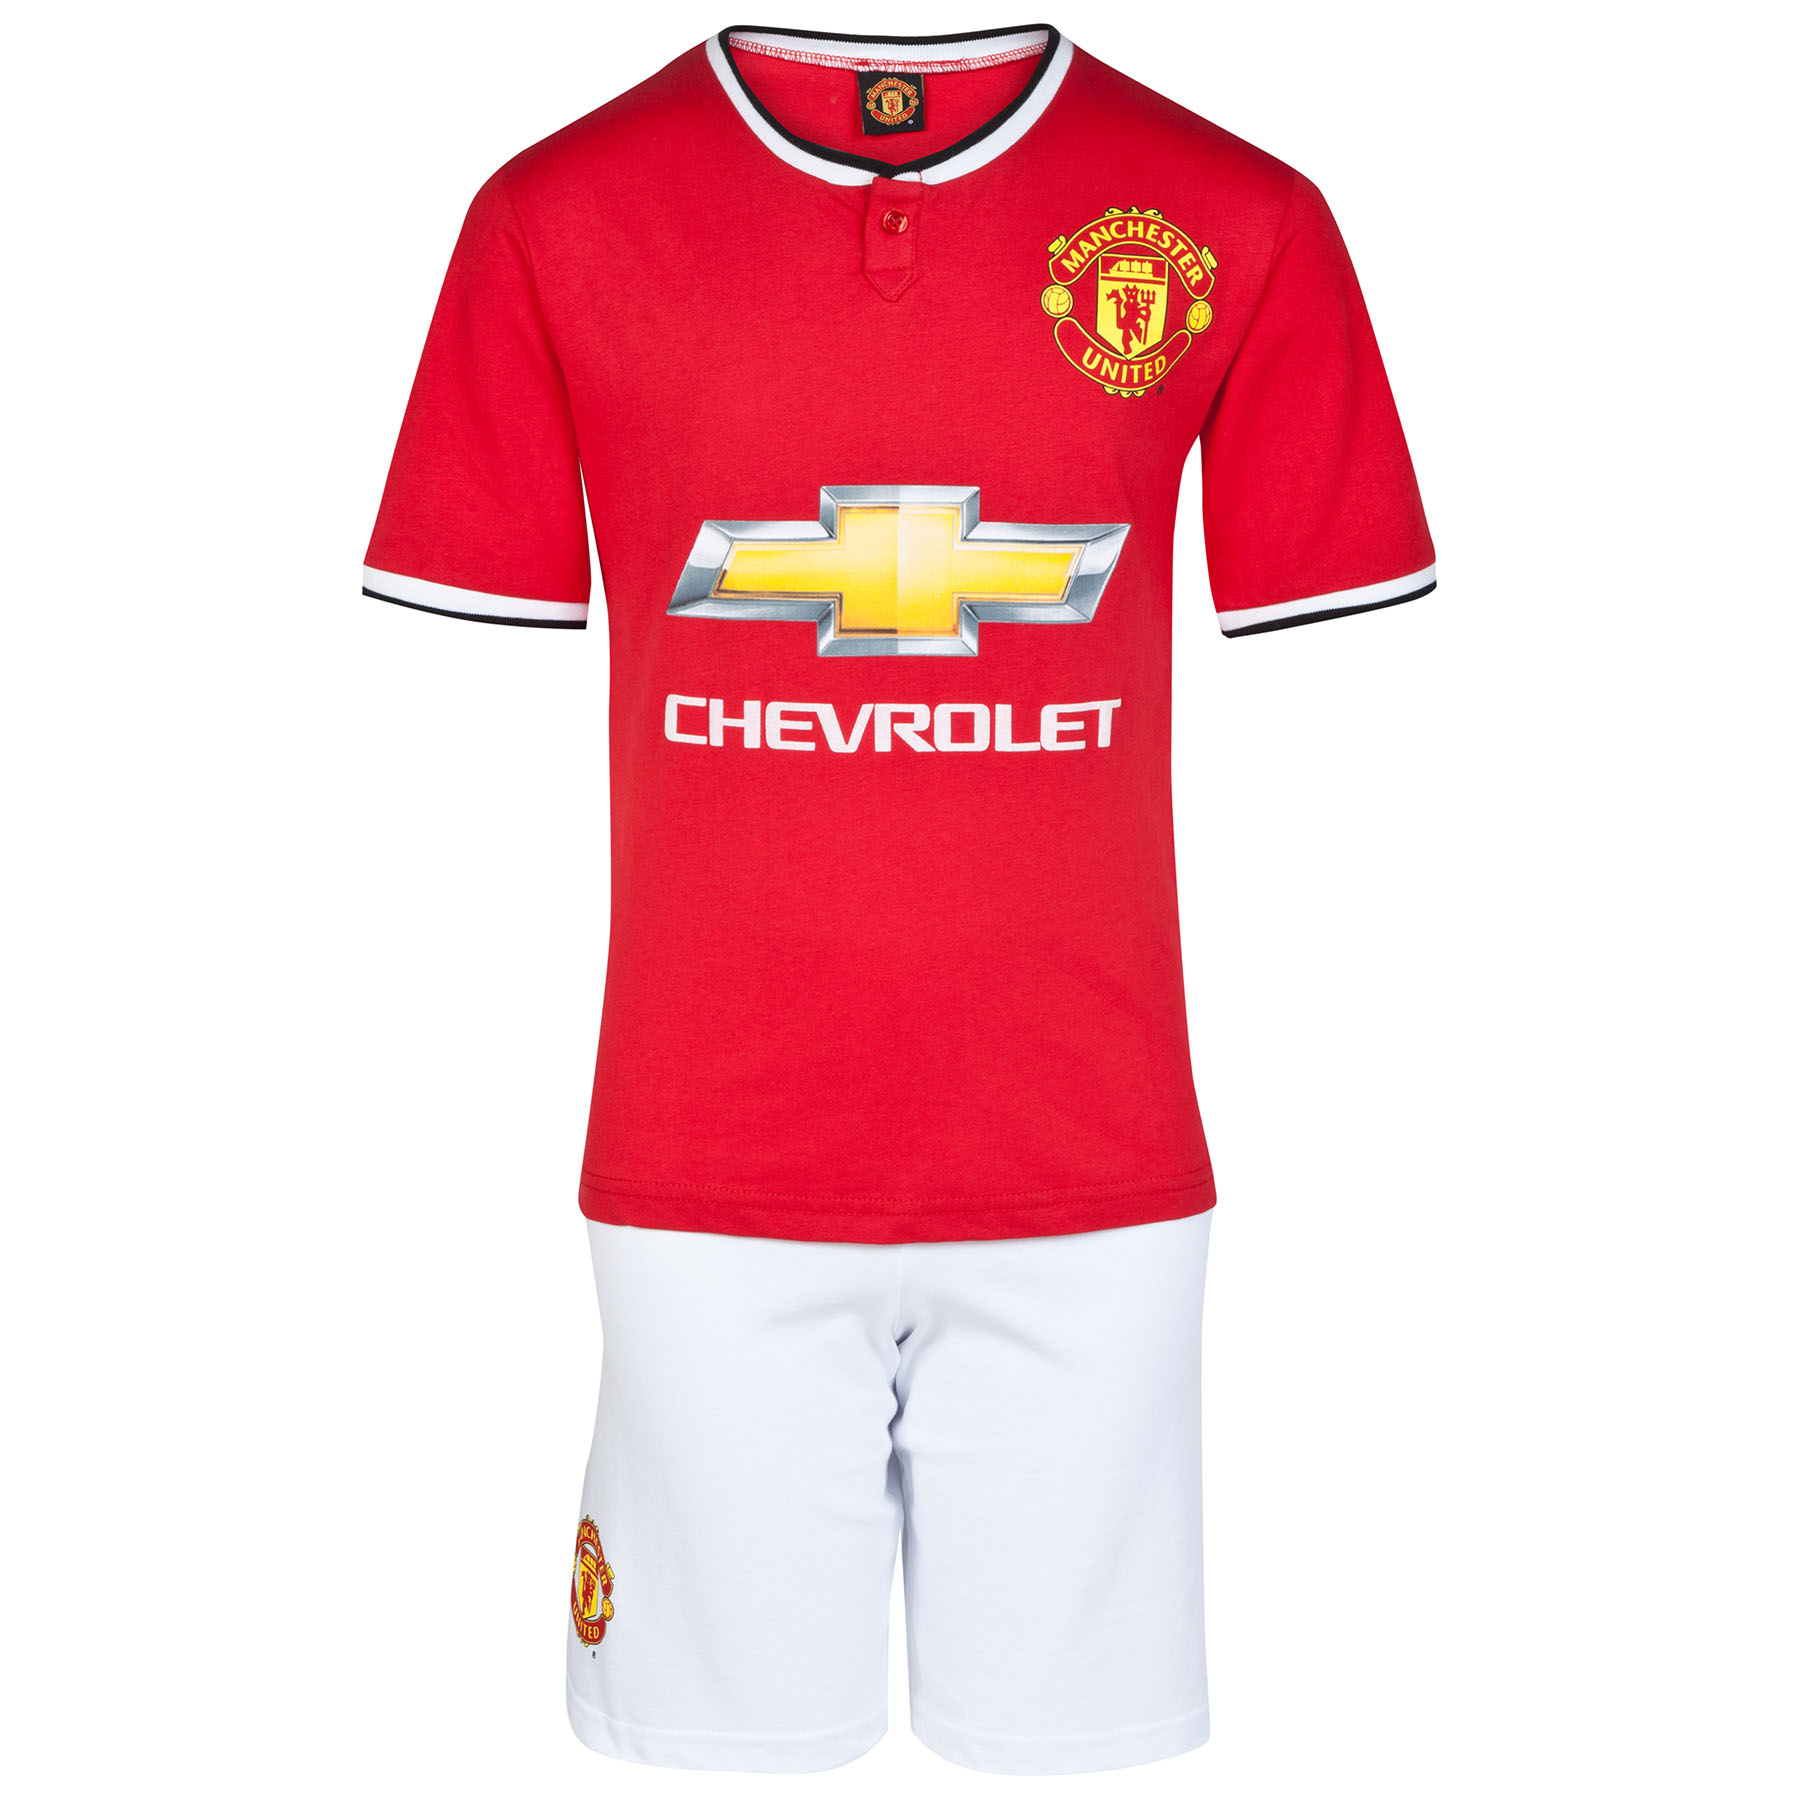 Manchester United Home Kit Pyjamas - Red/White - Boys